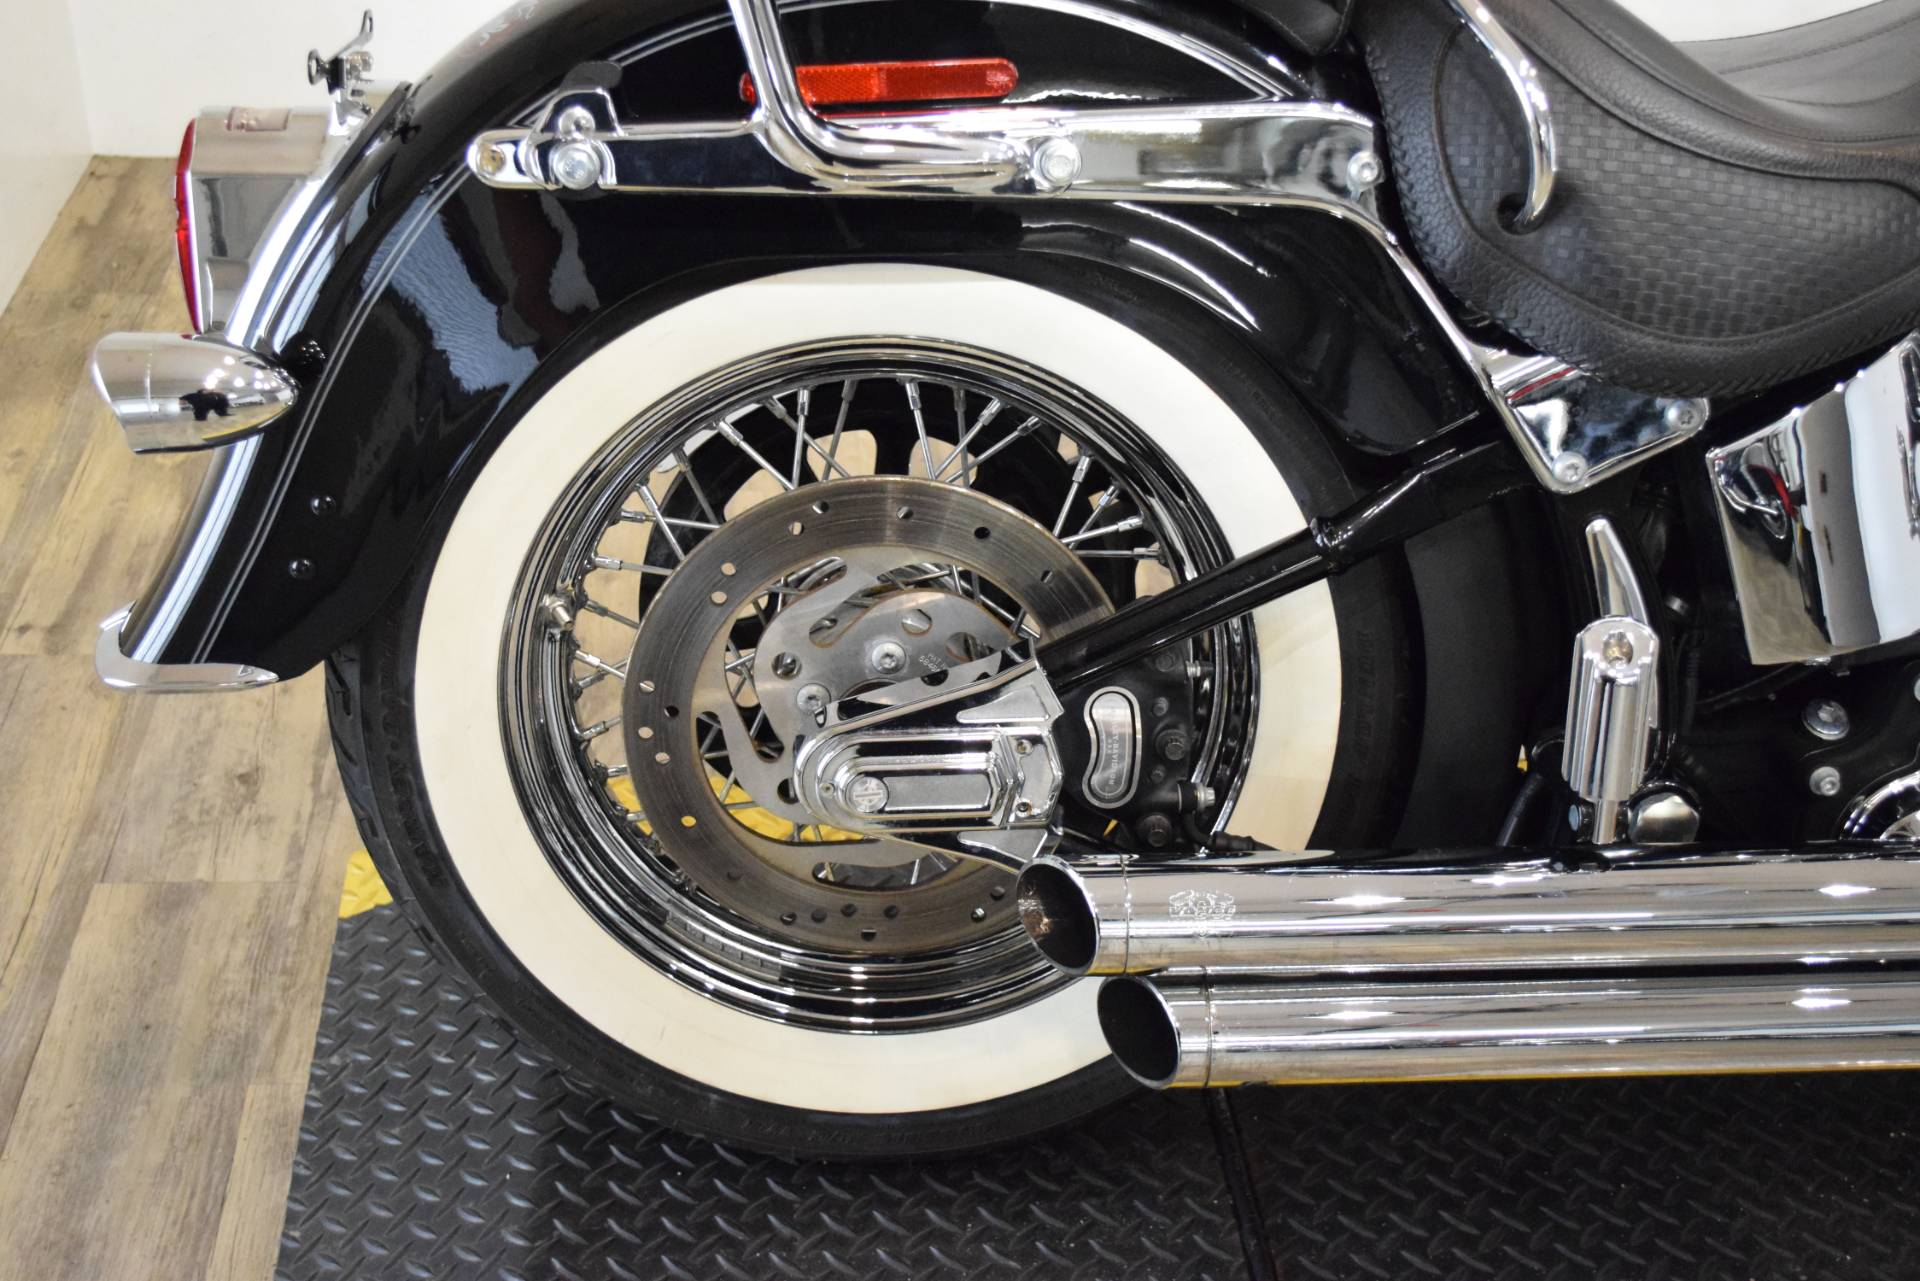 2007 Harley-Davidson Softail Deluxe in Wauconda, Illinois - Photo 9